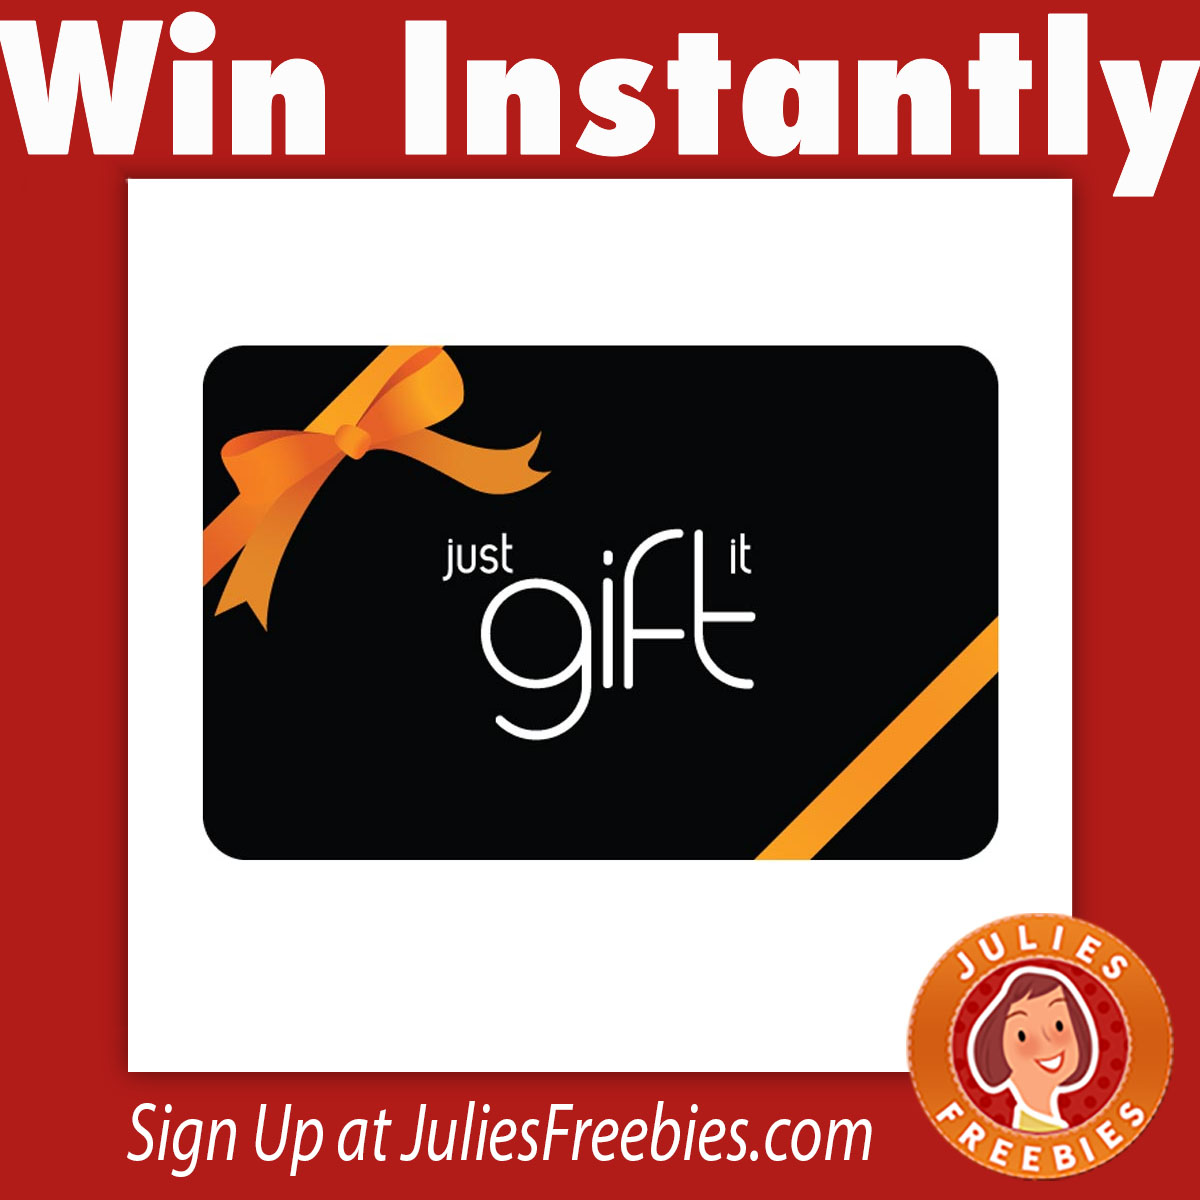 online instant win contests and sweepstakes